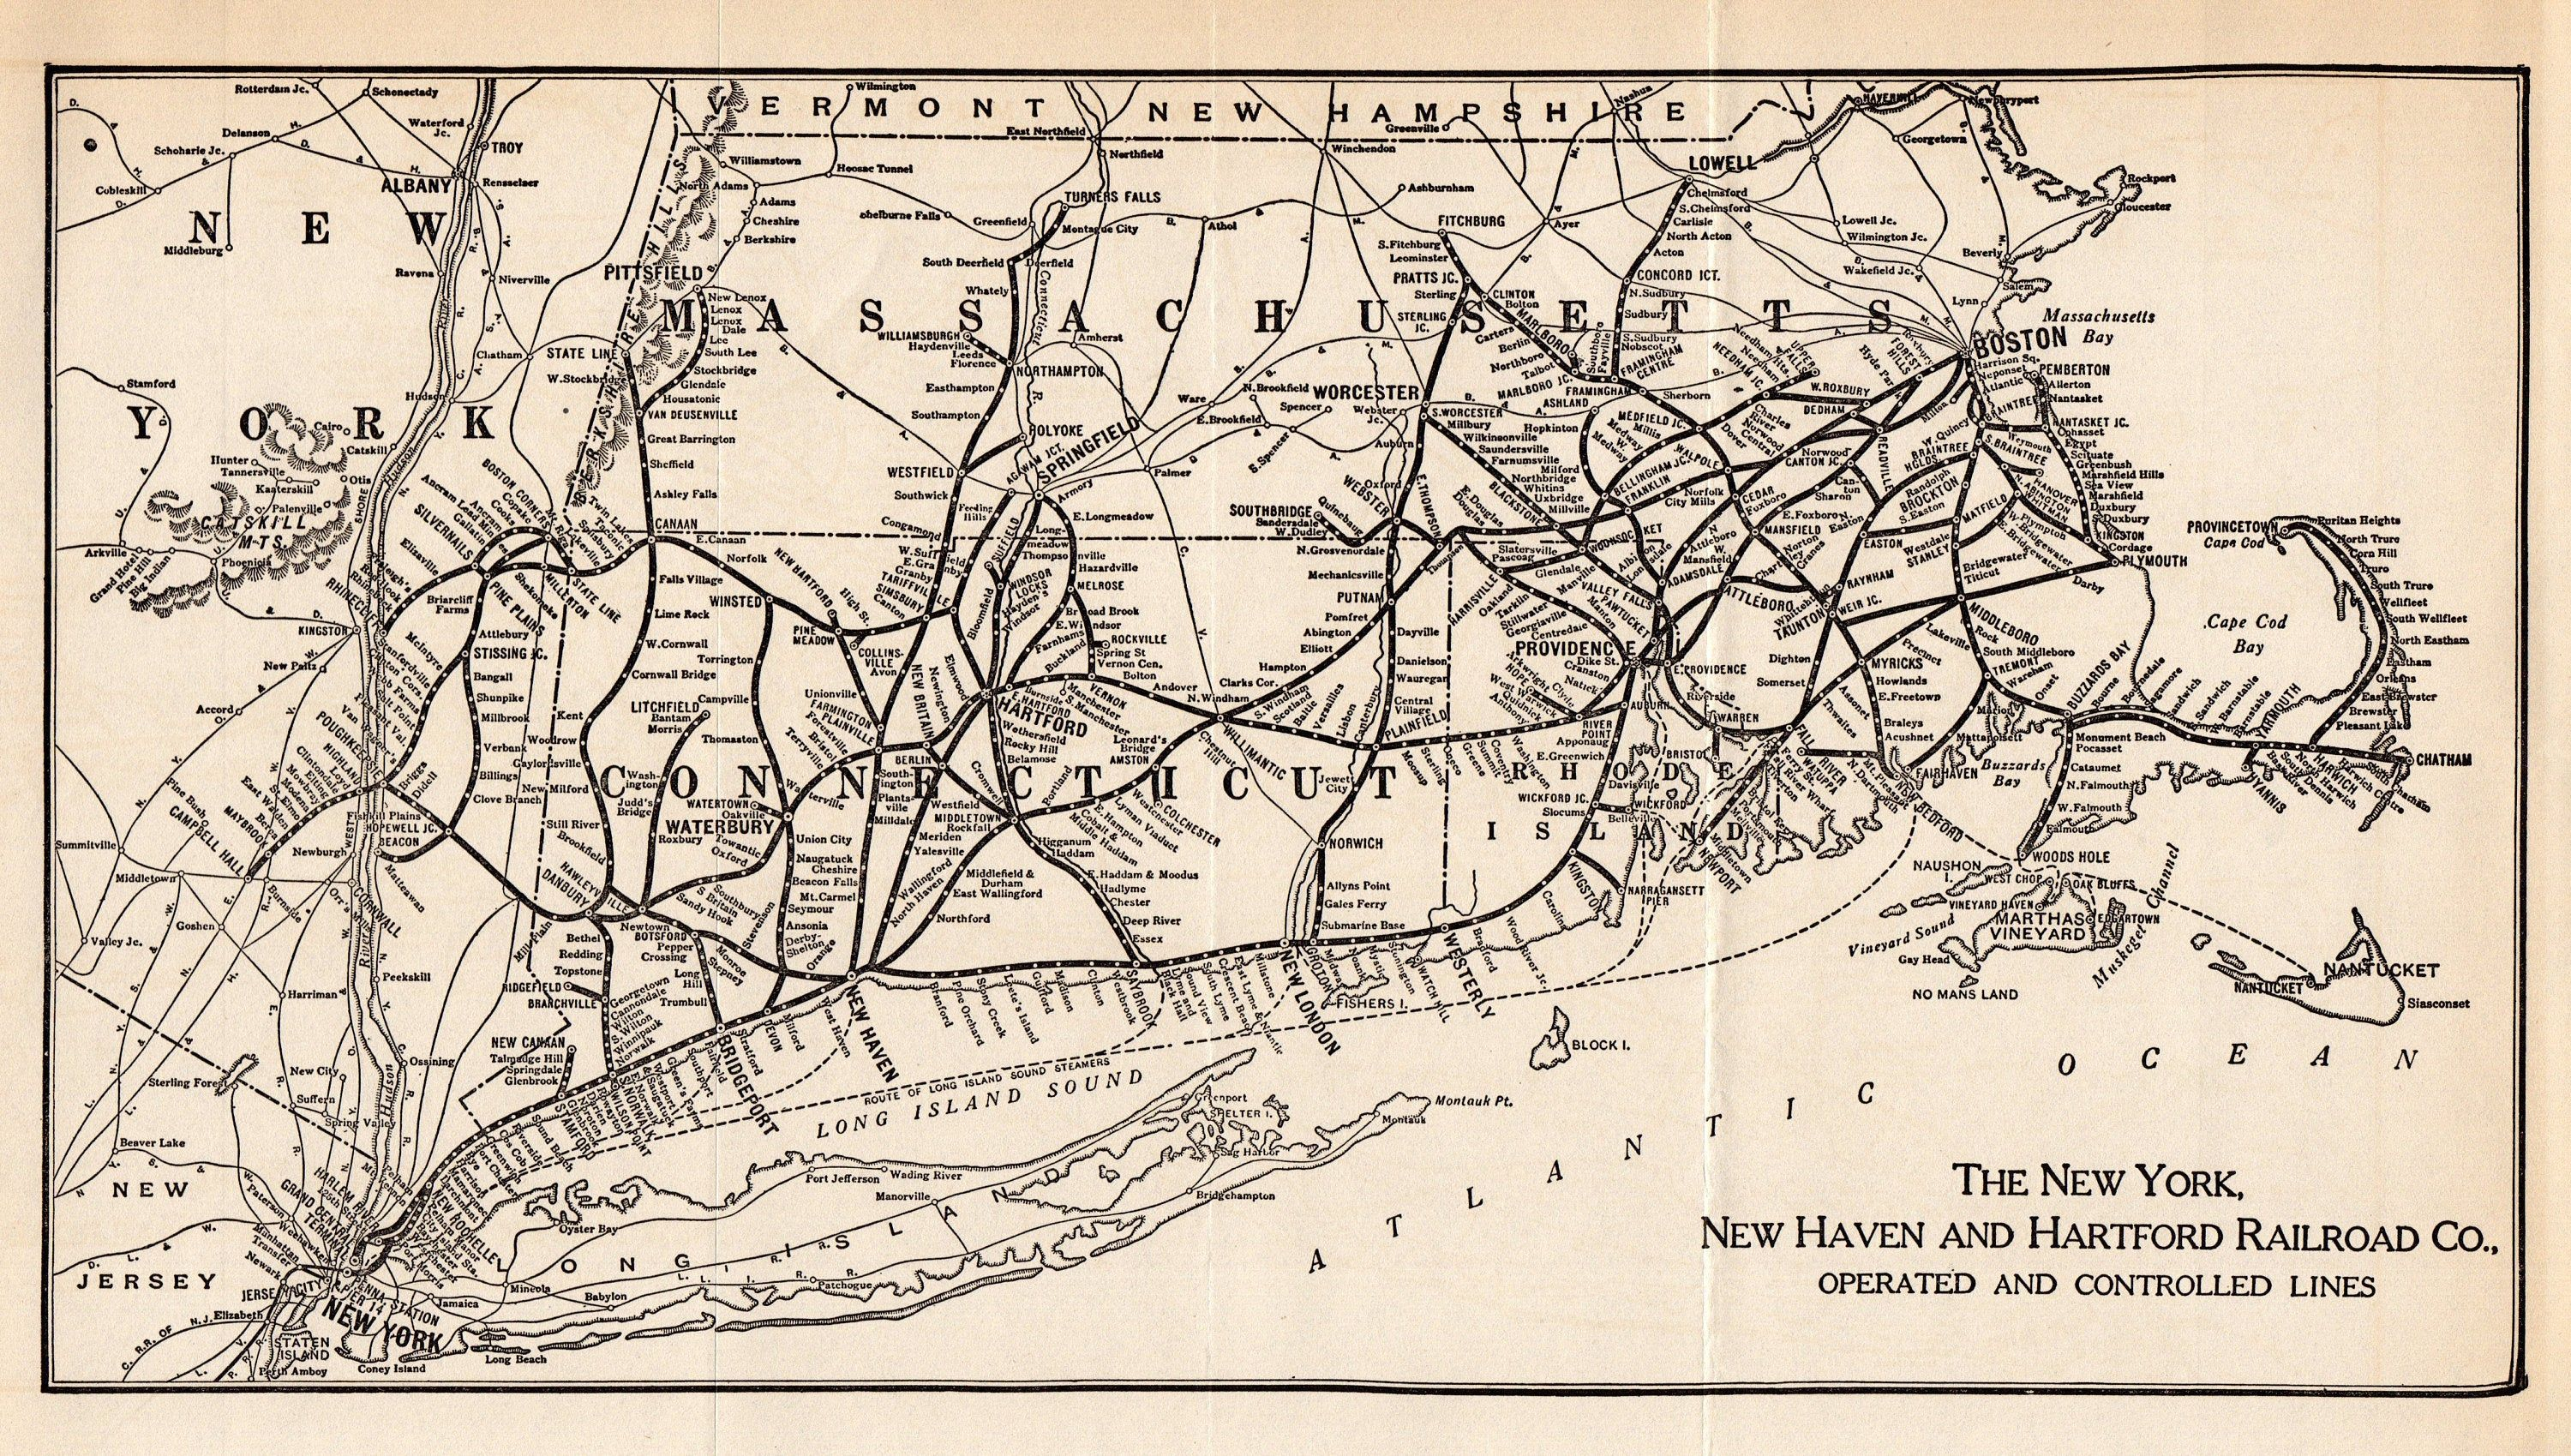 1933 Antique New York New Haven and Hartford Railroad Map